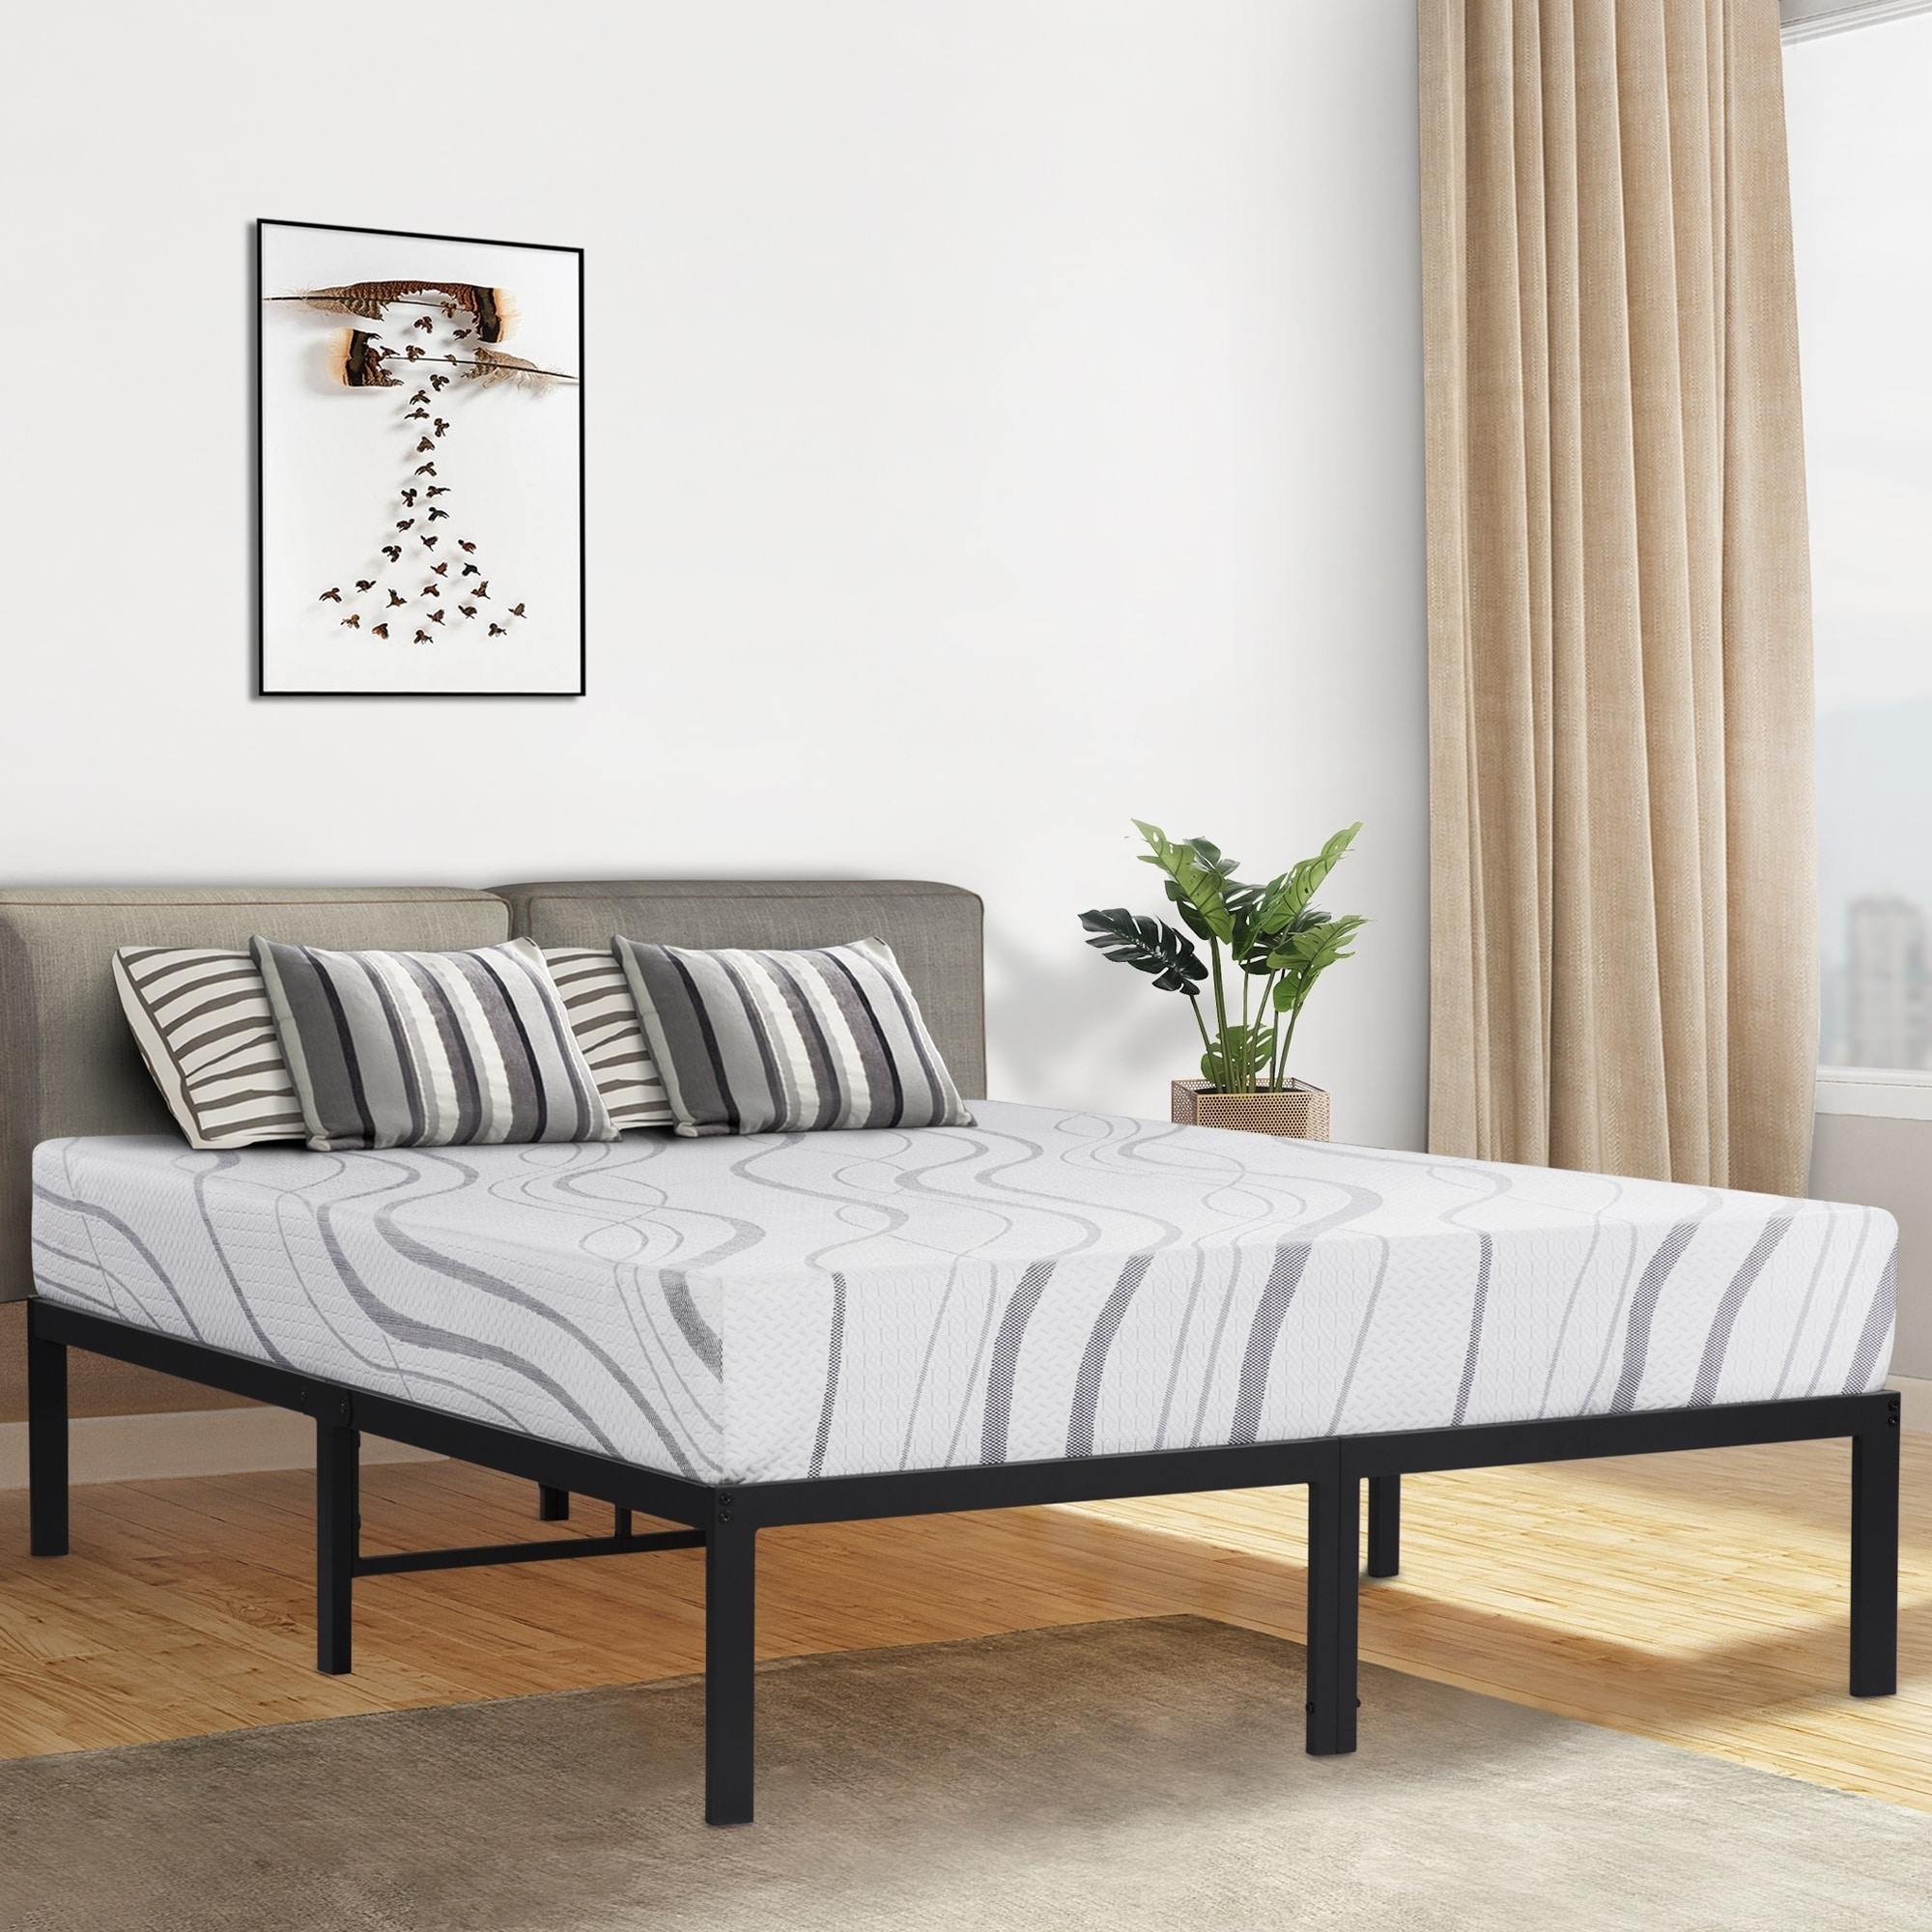 14 Inch Tall Metal Platform Bed Frame Steel Slat Queen Full Twin King Size Bed Home Garden Bedding